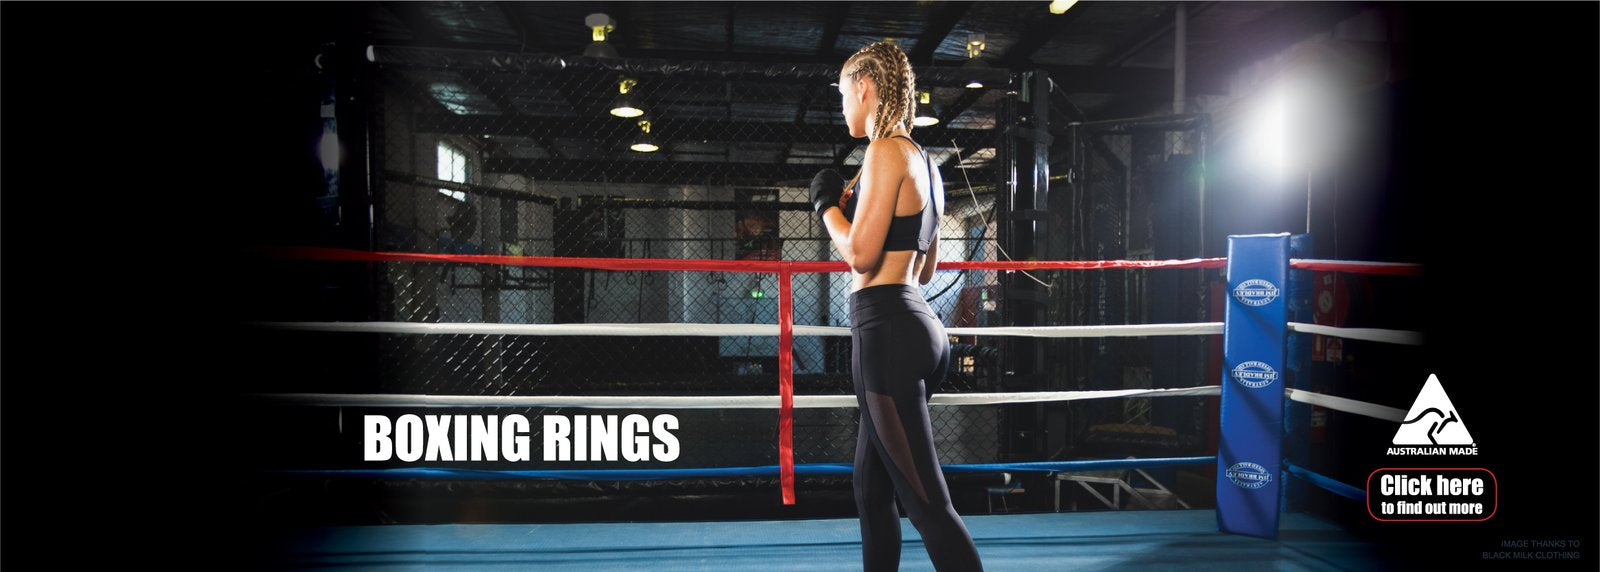 Boxing Rings